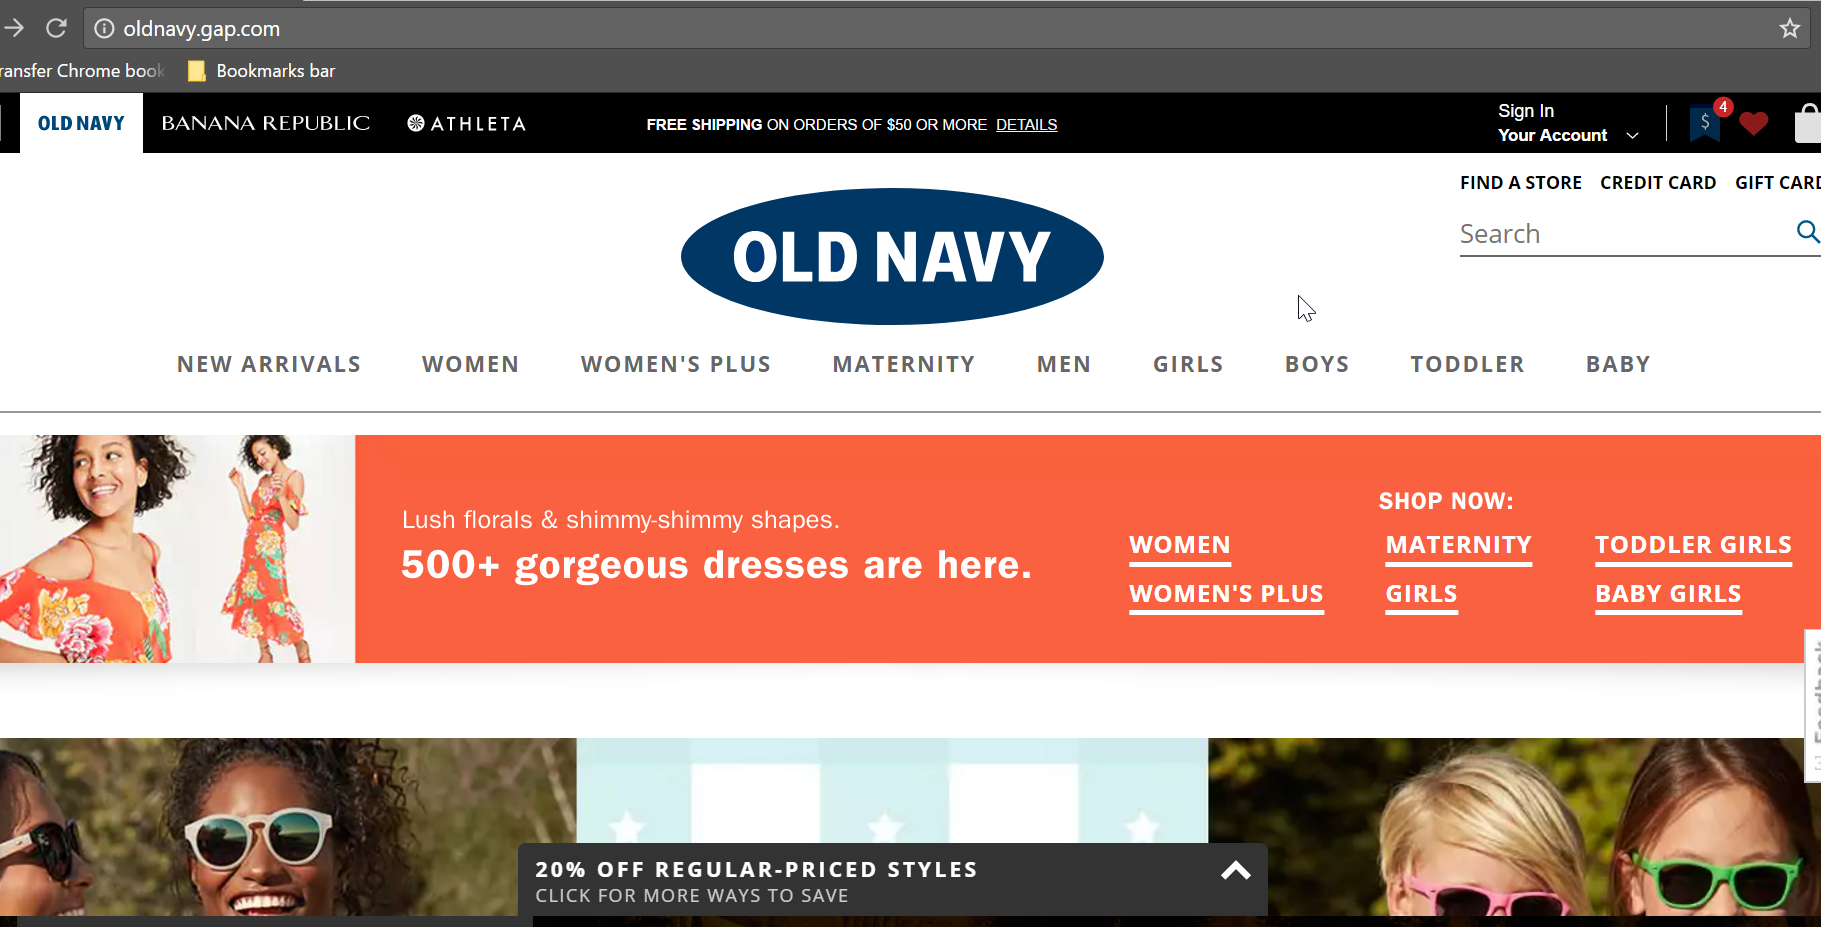 Targeting unique categories in fashion ecommerce